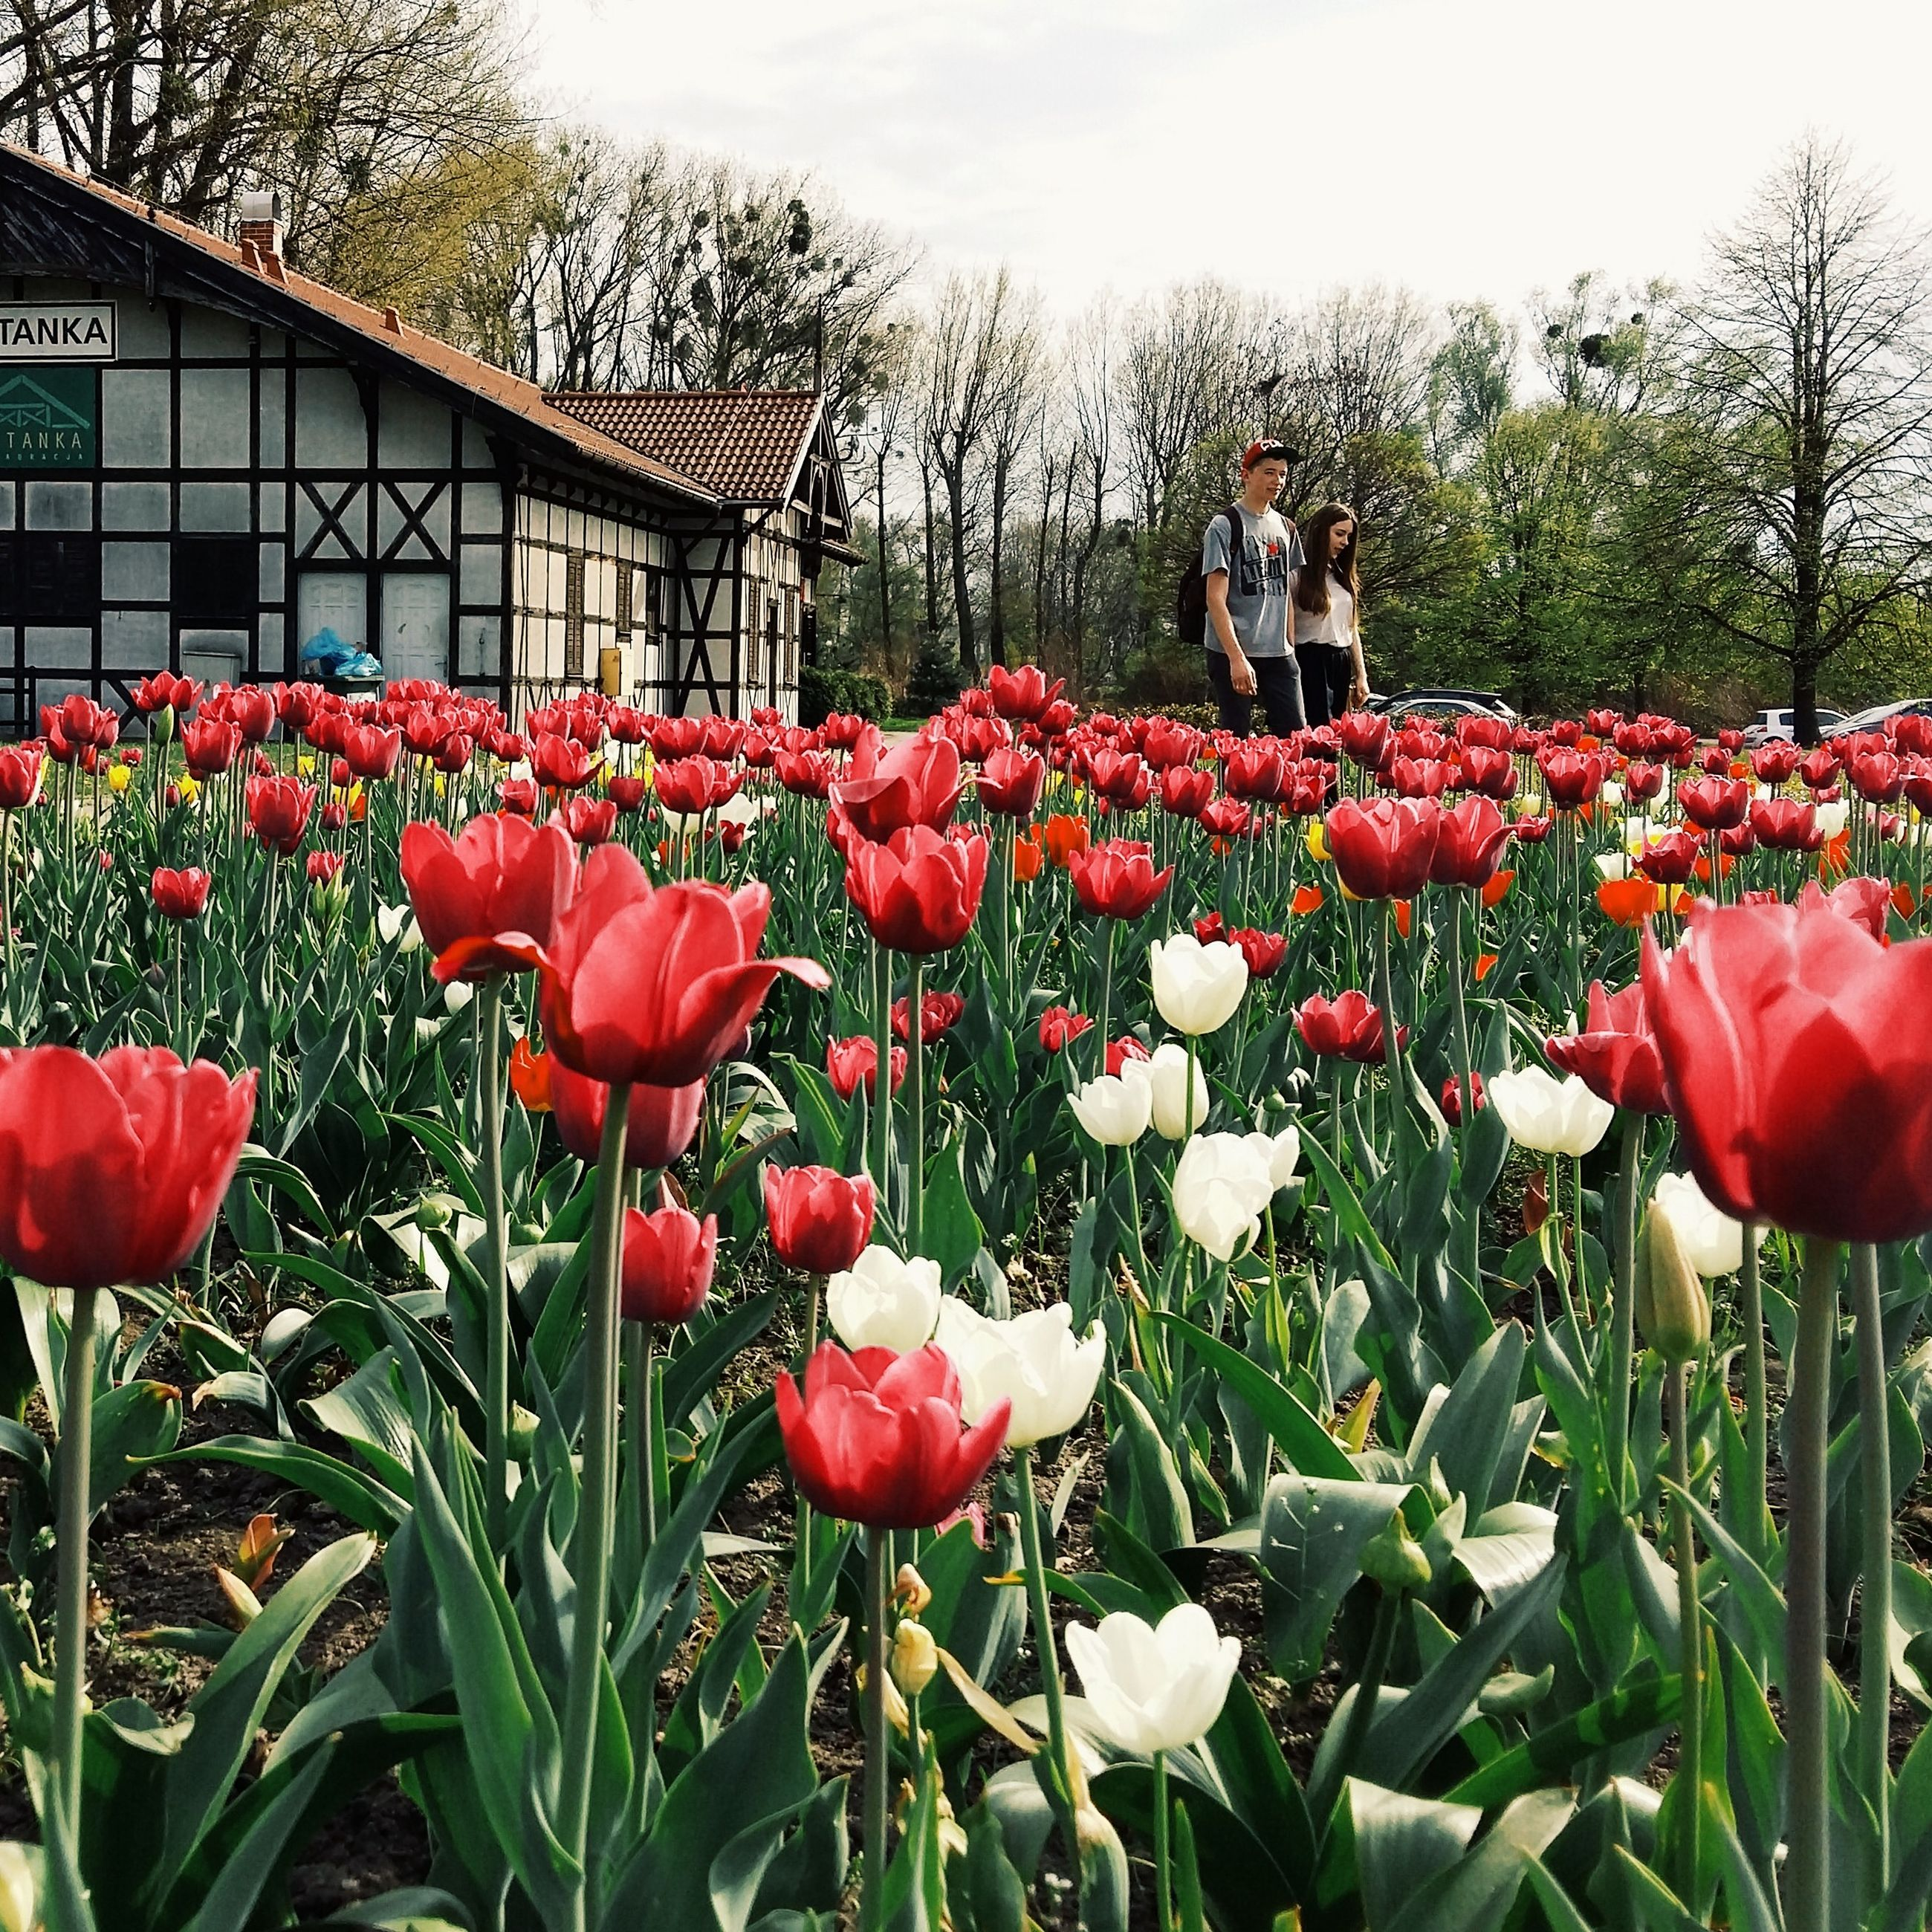 flower, freshness, fragility, petal, tulip, growth, beauty in nature, flower head, blooming, nature, field, plant, pink color, sky, park - man made space, blossom, in bloom, flowerbed, red, day